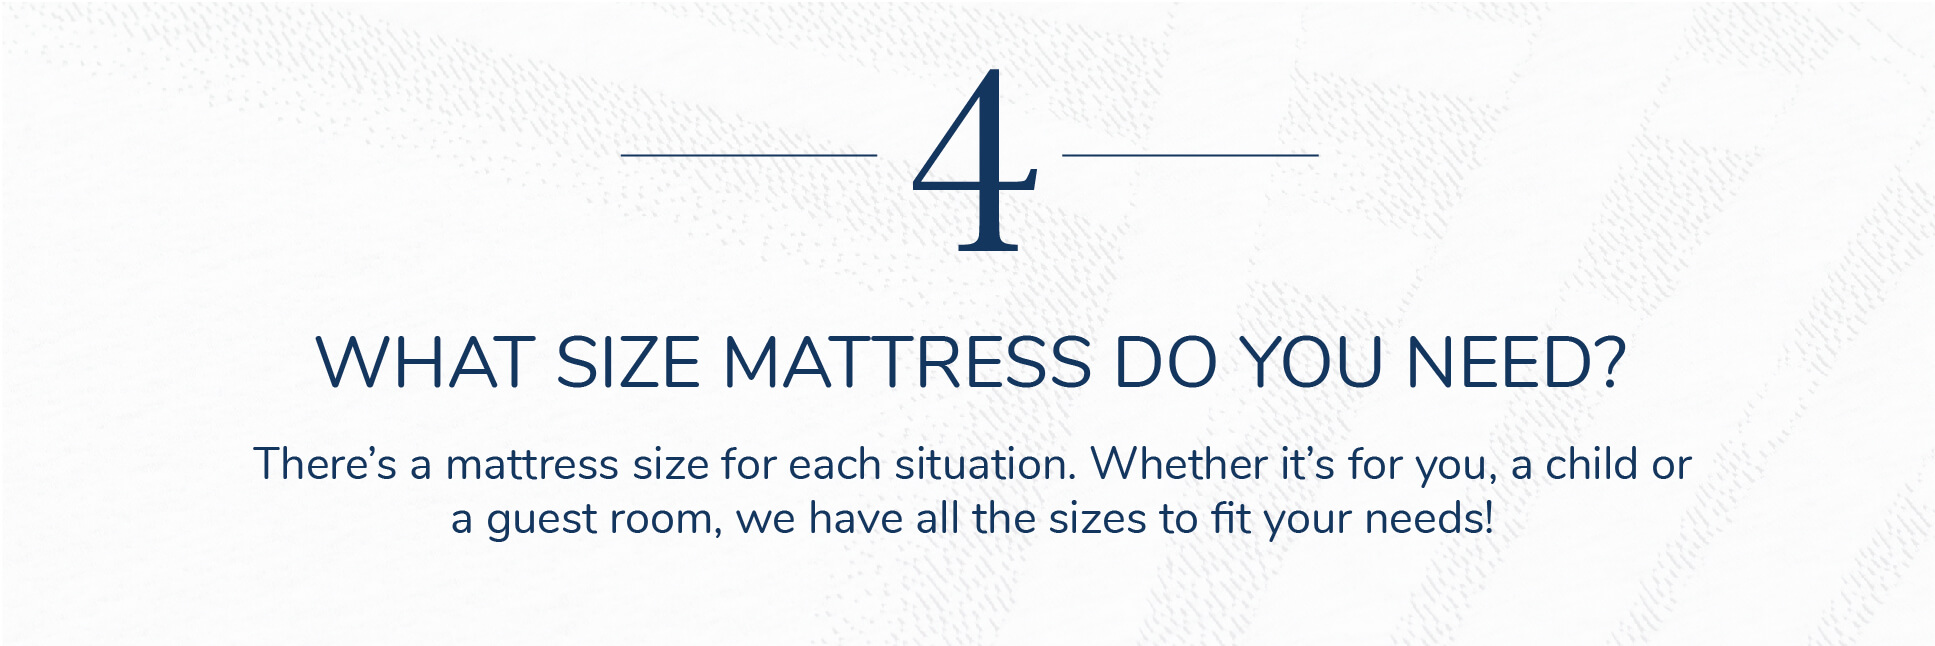 Our mattress selector will ask you a few questions to determine the perfect mattress for you